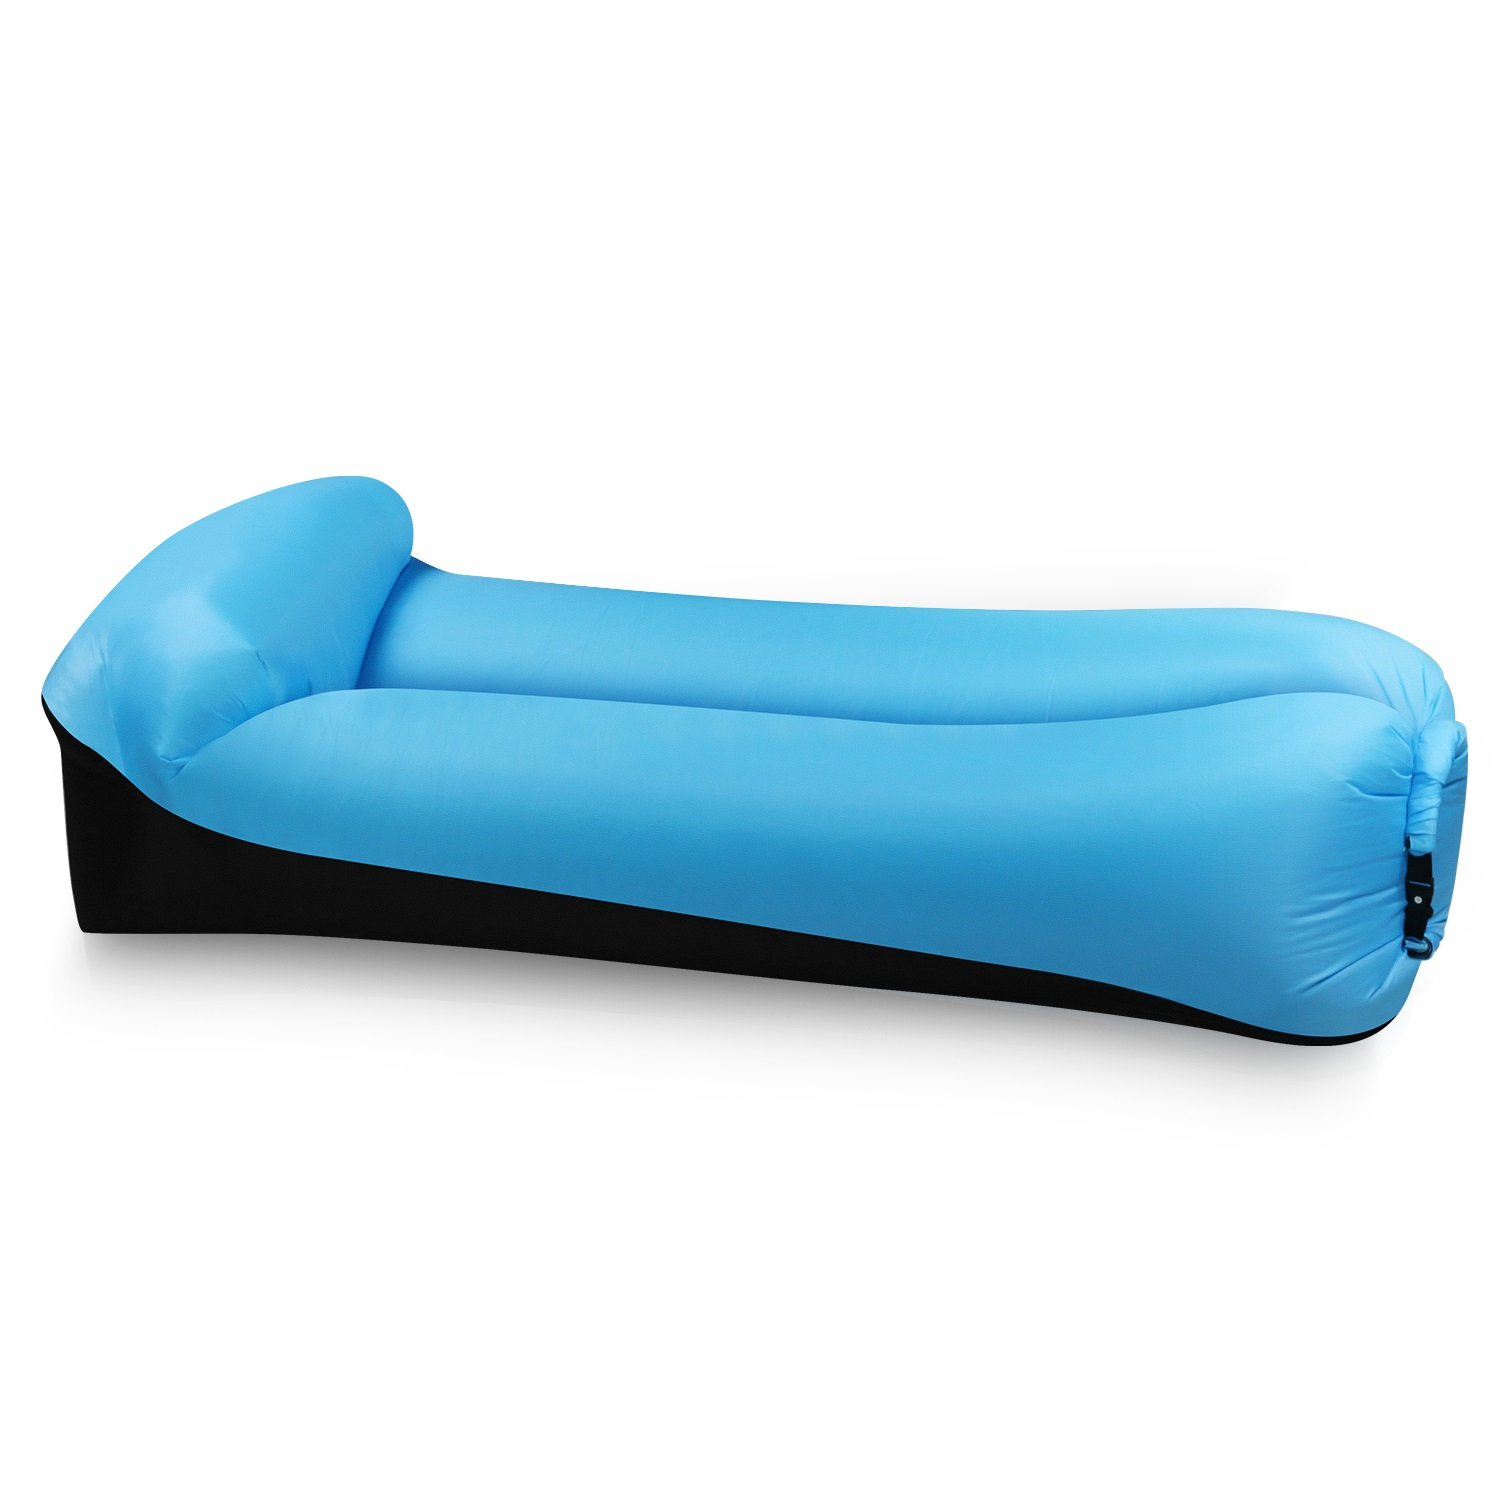 Admirable Sports Outdoors Inflatable Lounger Inflatable Couch Gmtry Best Dining Table And Chair Ideas Images Gmtryco